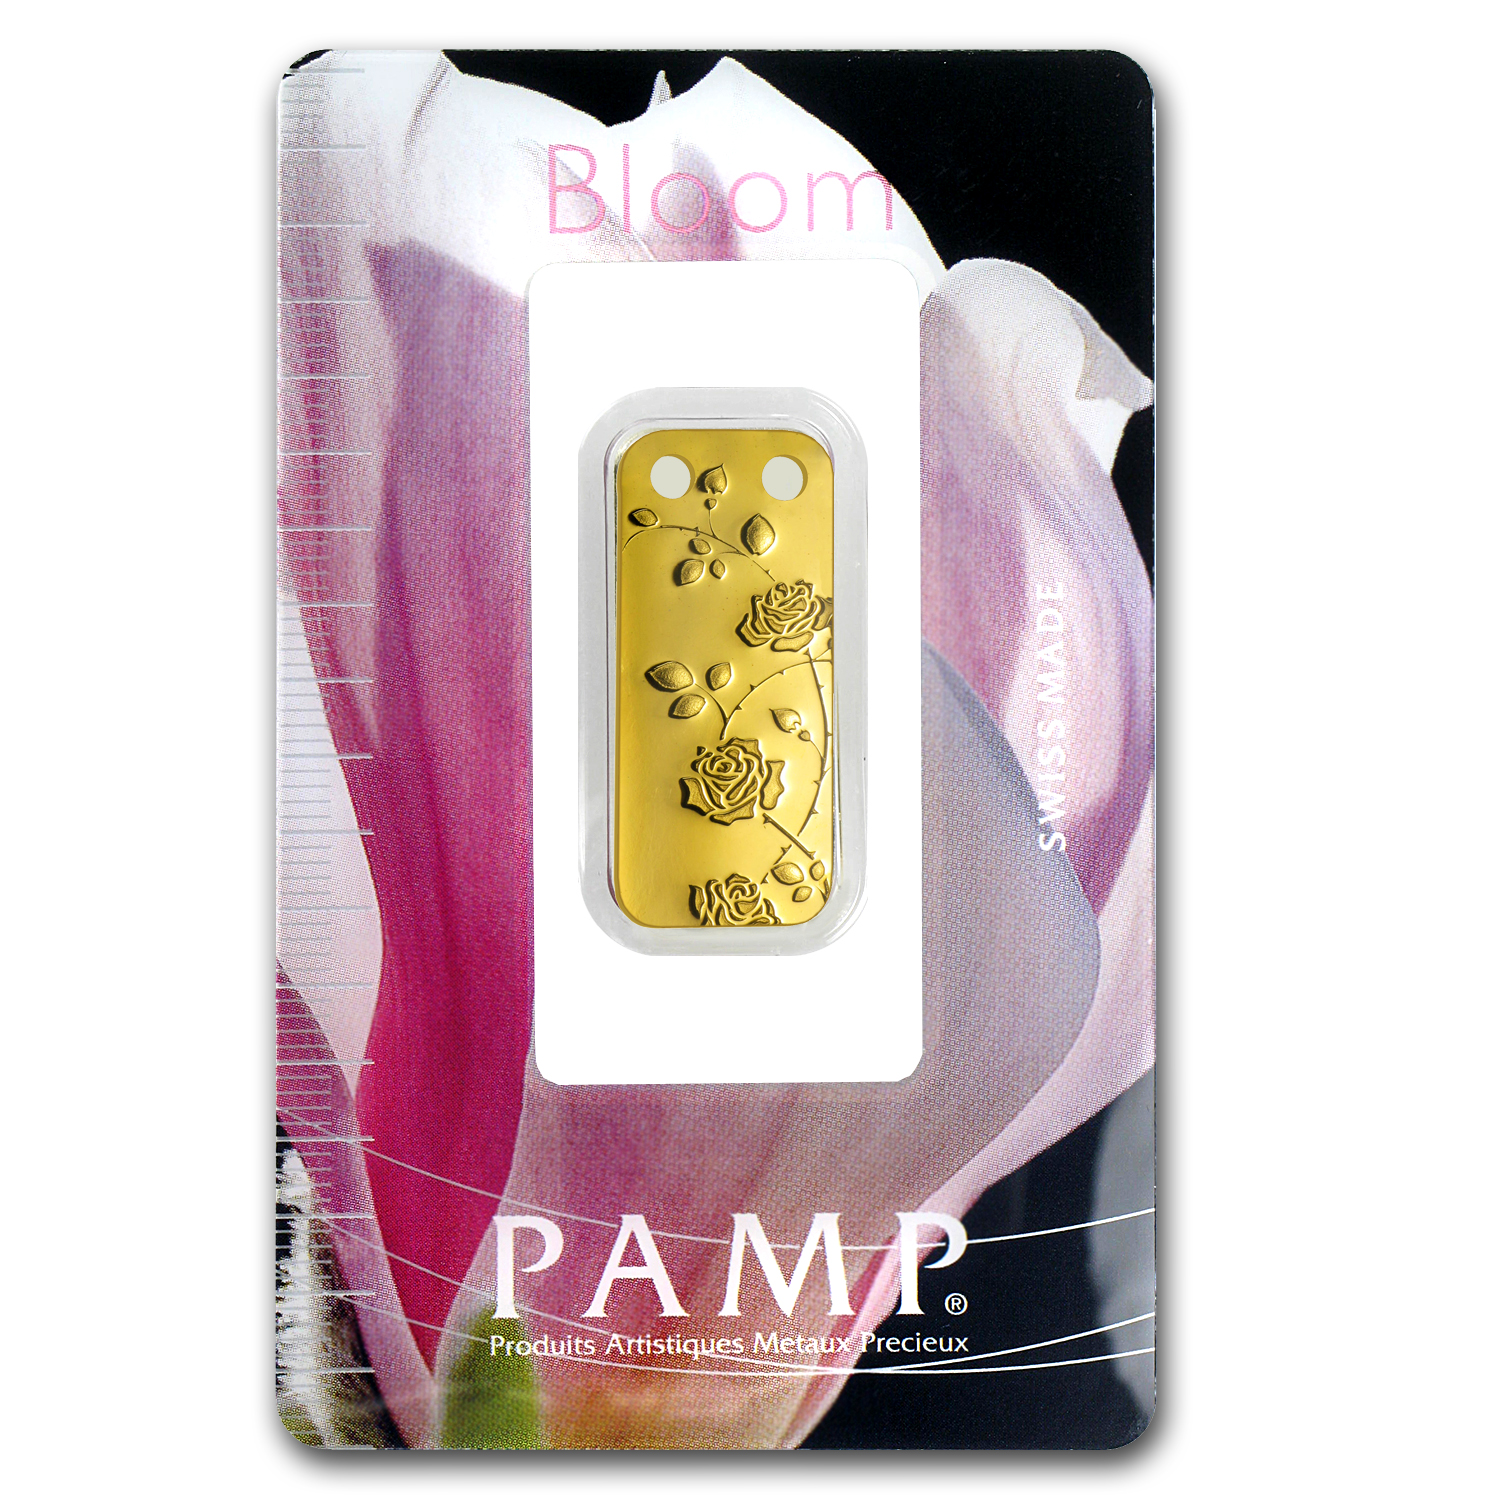 1/5 oz Gold Pendants - Pamp Suisse Ingot (Rambling Rose, Proof)